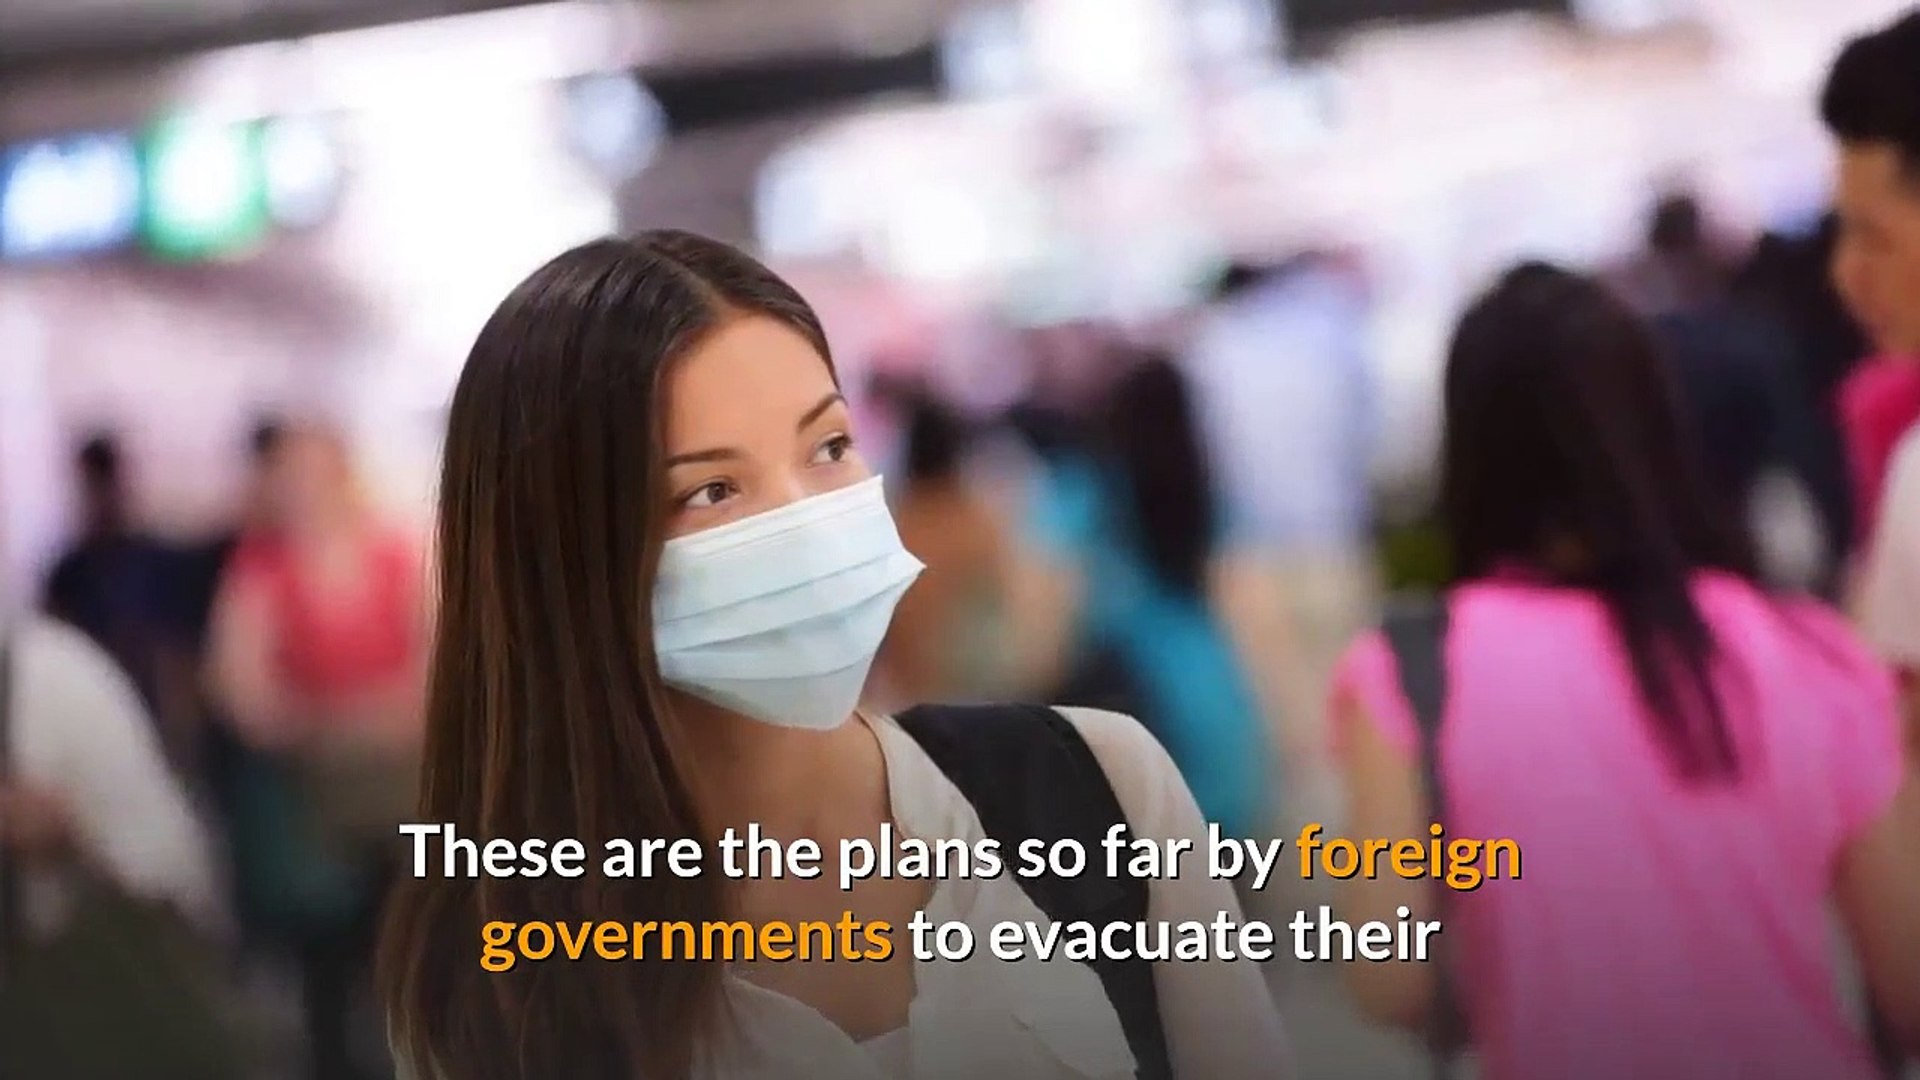 Coronavirus: These countries are planning to evacuate their citizens from China